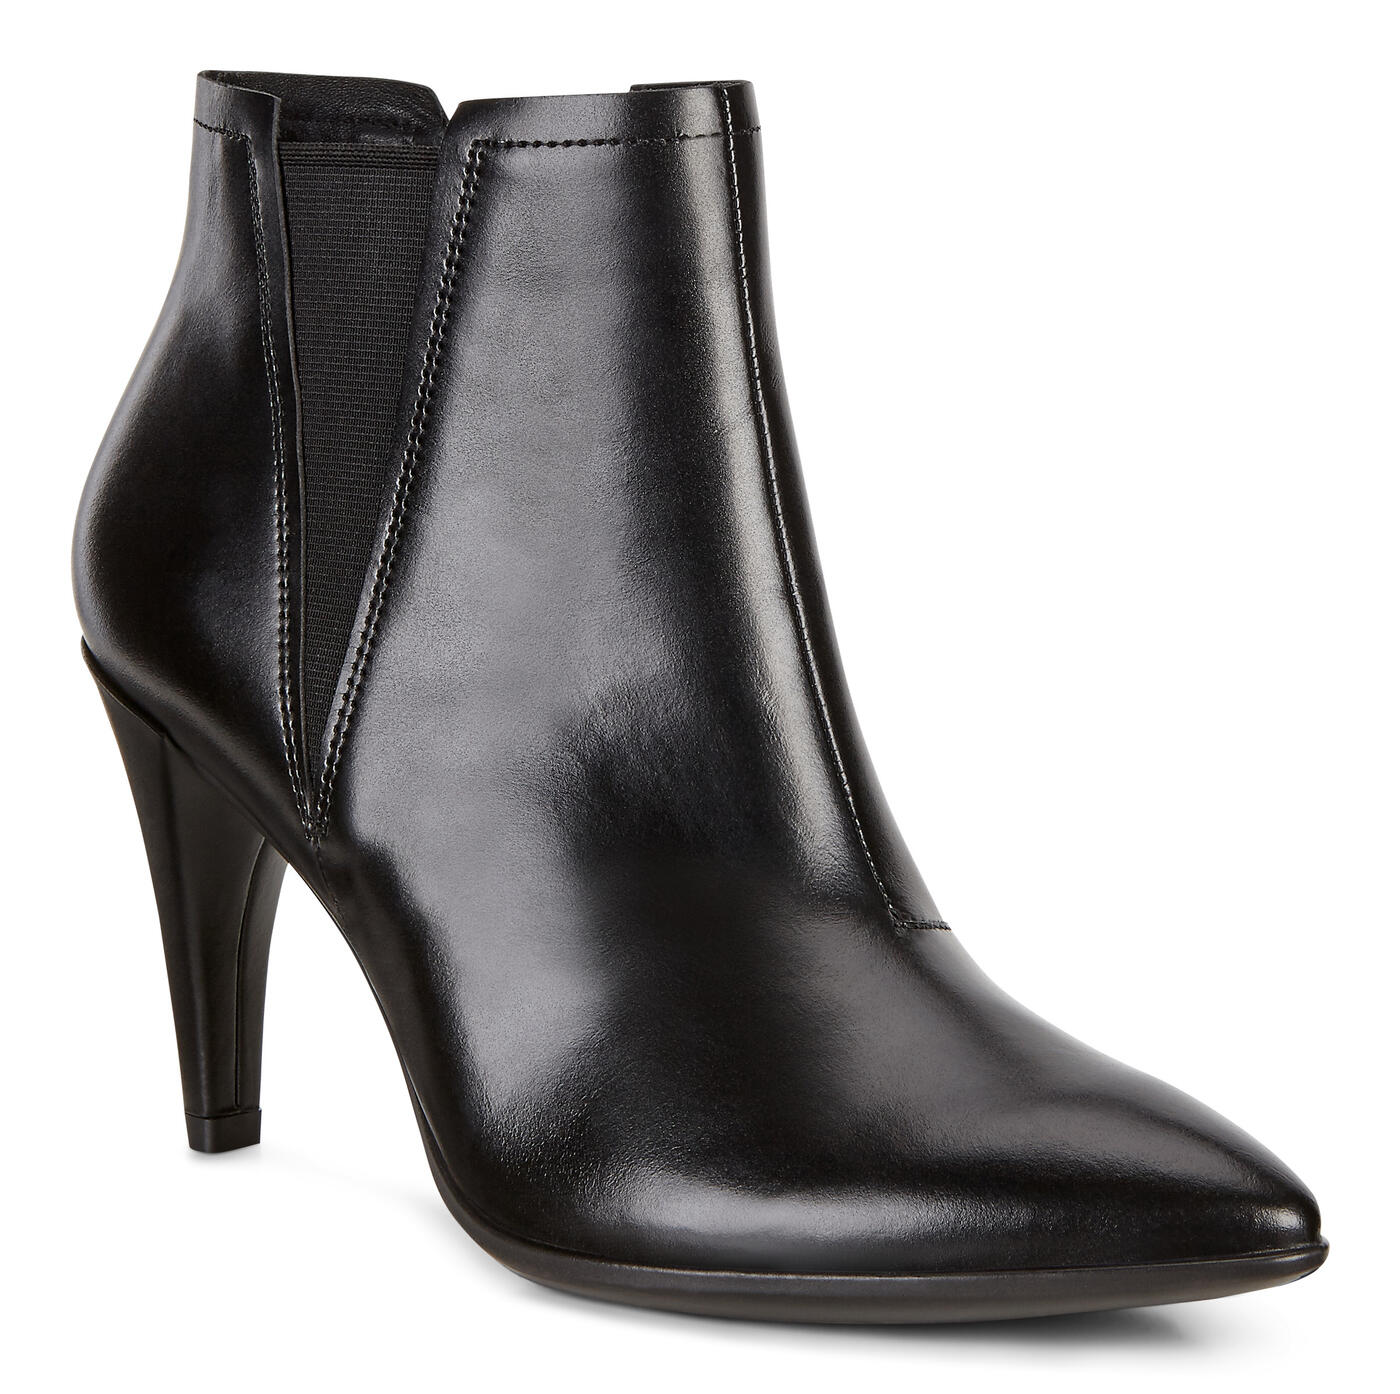 BOTTE ECCO SHAPE 75 POINTY